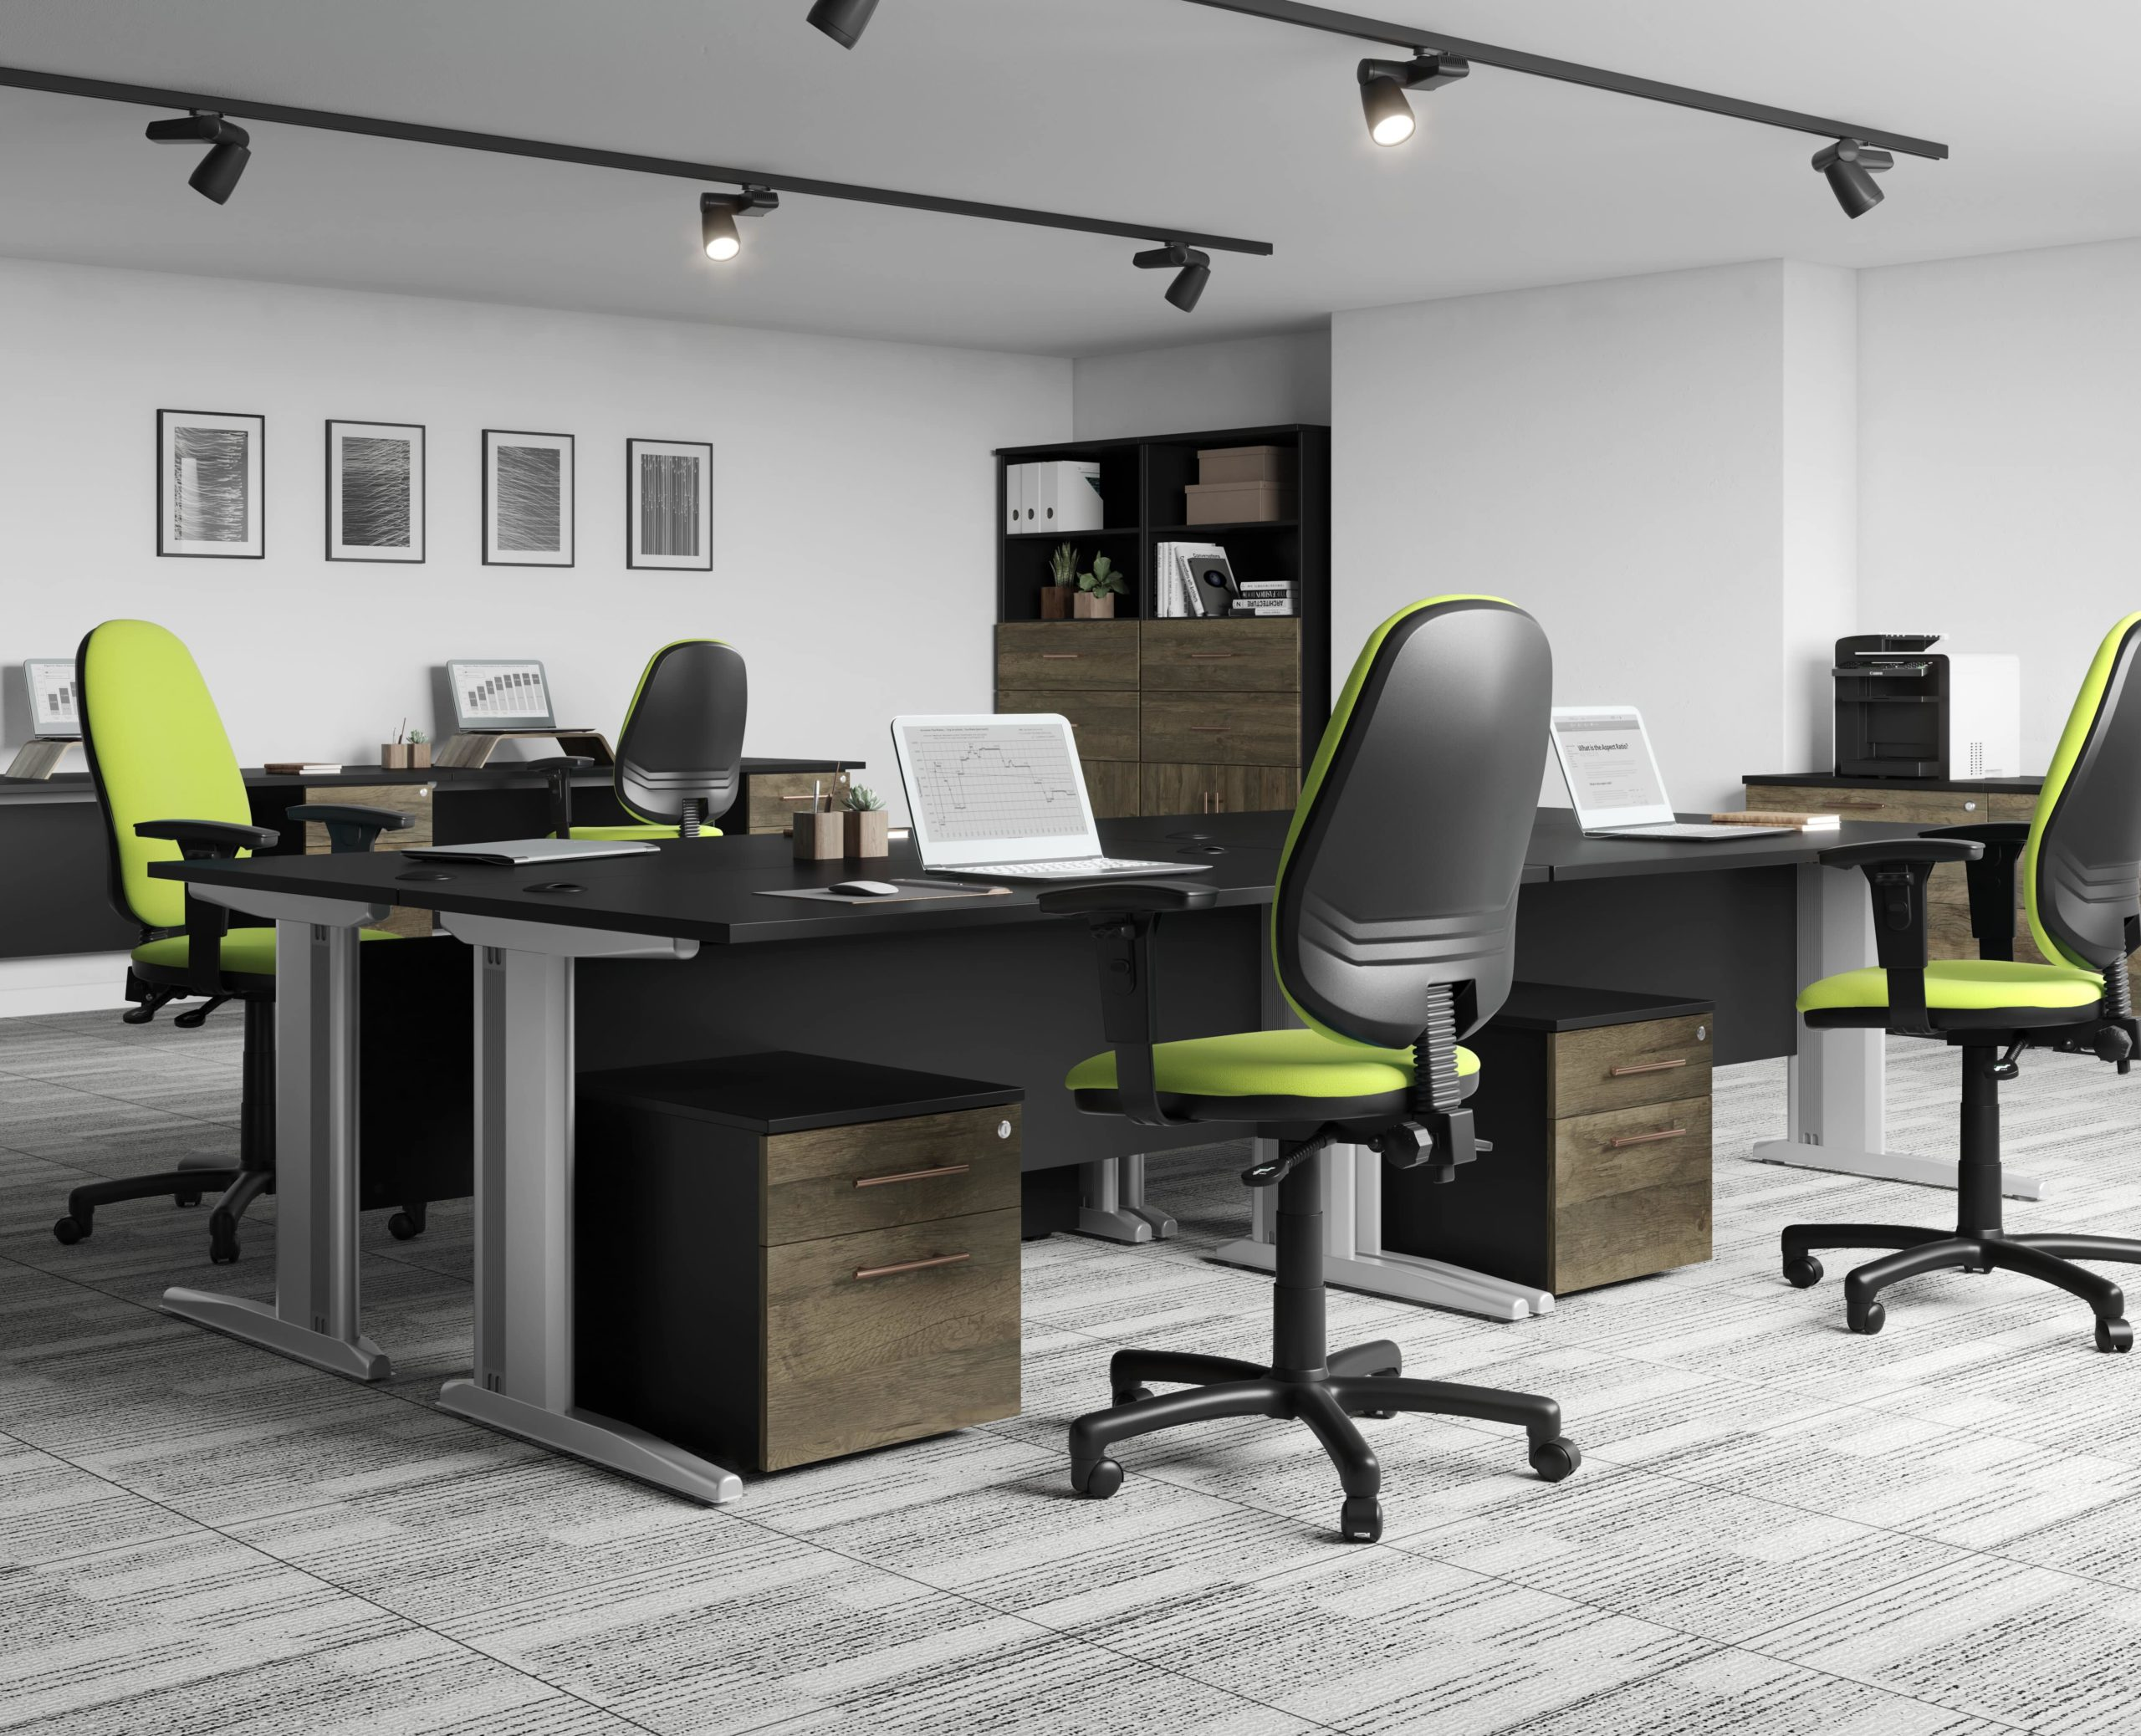 Carbon office furniture range with oak finish